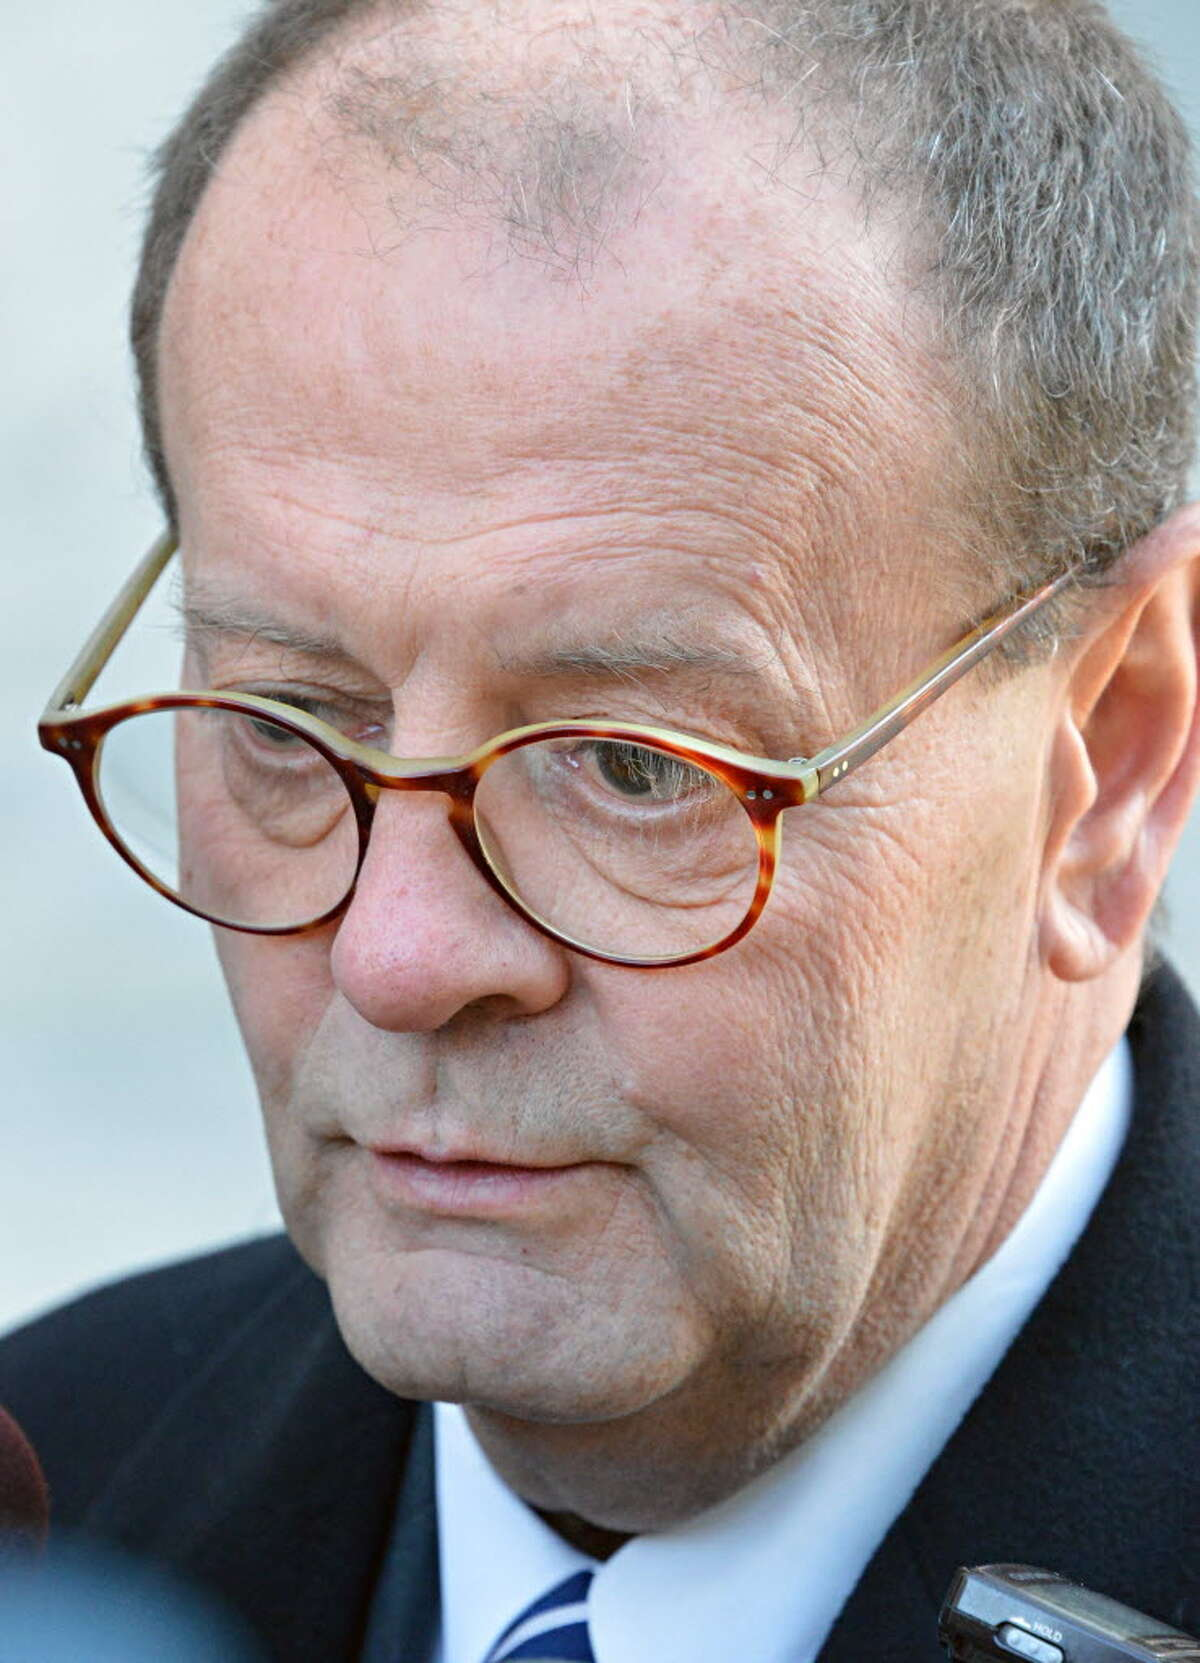 In this file photograph, James Long, defense attorney for Martin Kimber, the man facing domestic terrorism-related charges for smearing potentially deadly mercury around Albany Medical Center Hospital speaks to reporters outside U.S. District Court in Albany Thursday Nov. 29, 2012. (John Carl D'Annibale / Times Union) ORG XMIT: MER2016040610101803